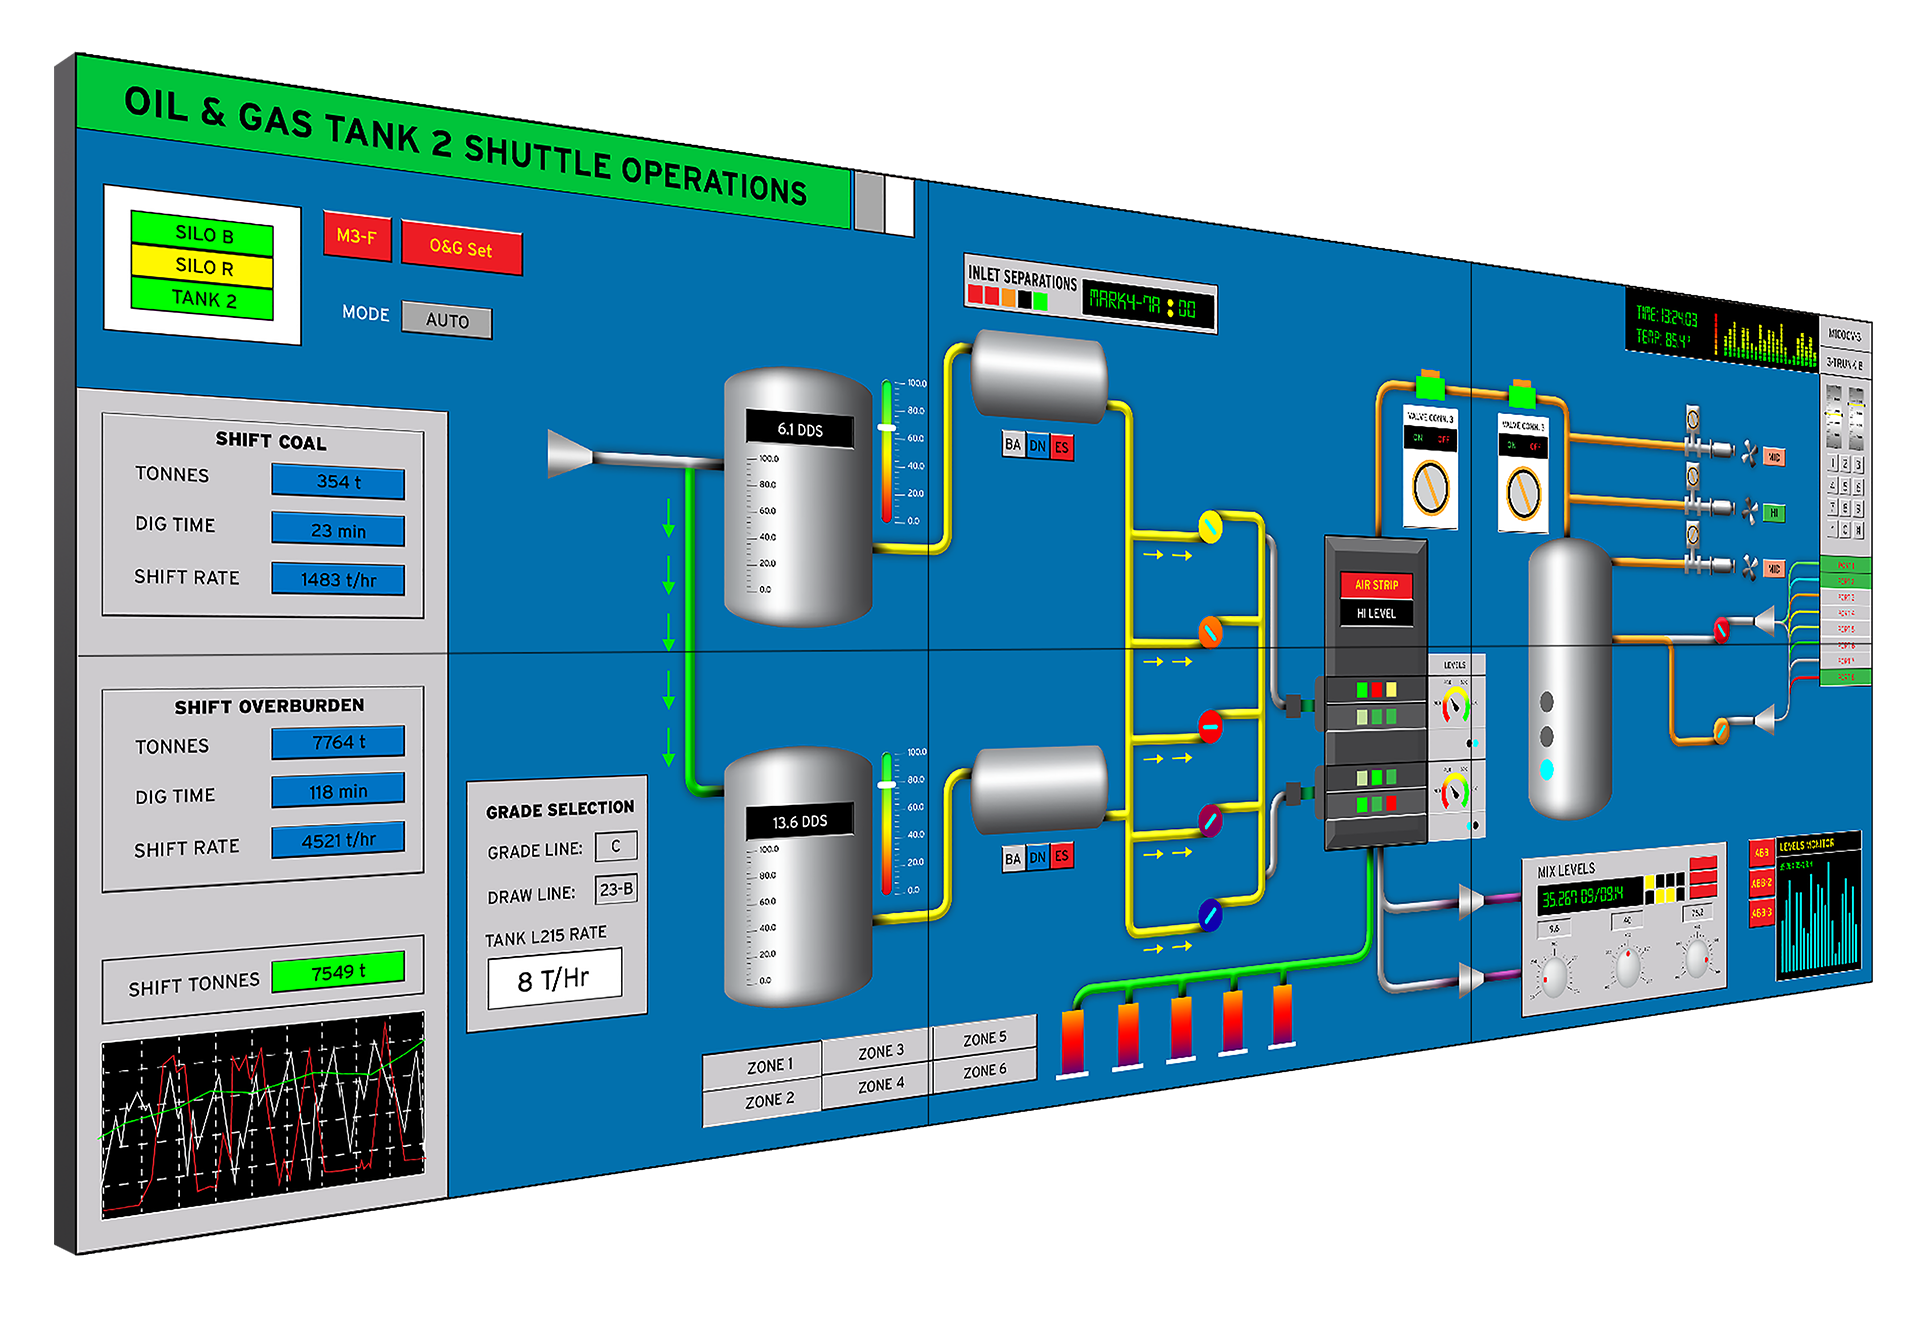 plc scada Programmable logic controller or plc is a computing system used to control electromechanical processes scada stands for supervisory control and data acquisition it is a type of industrial control system that is used to monitor and control facilities and infrastructure in industries.